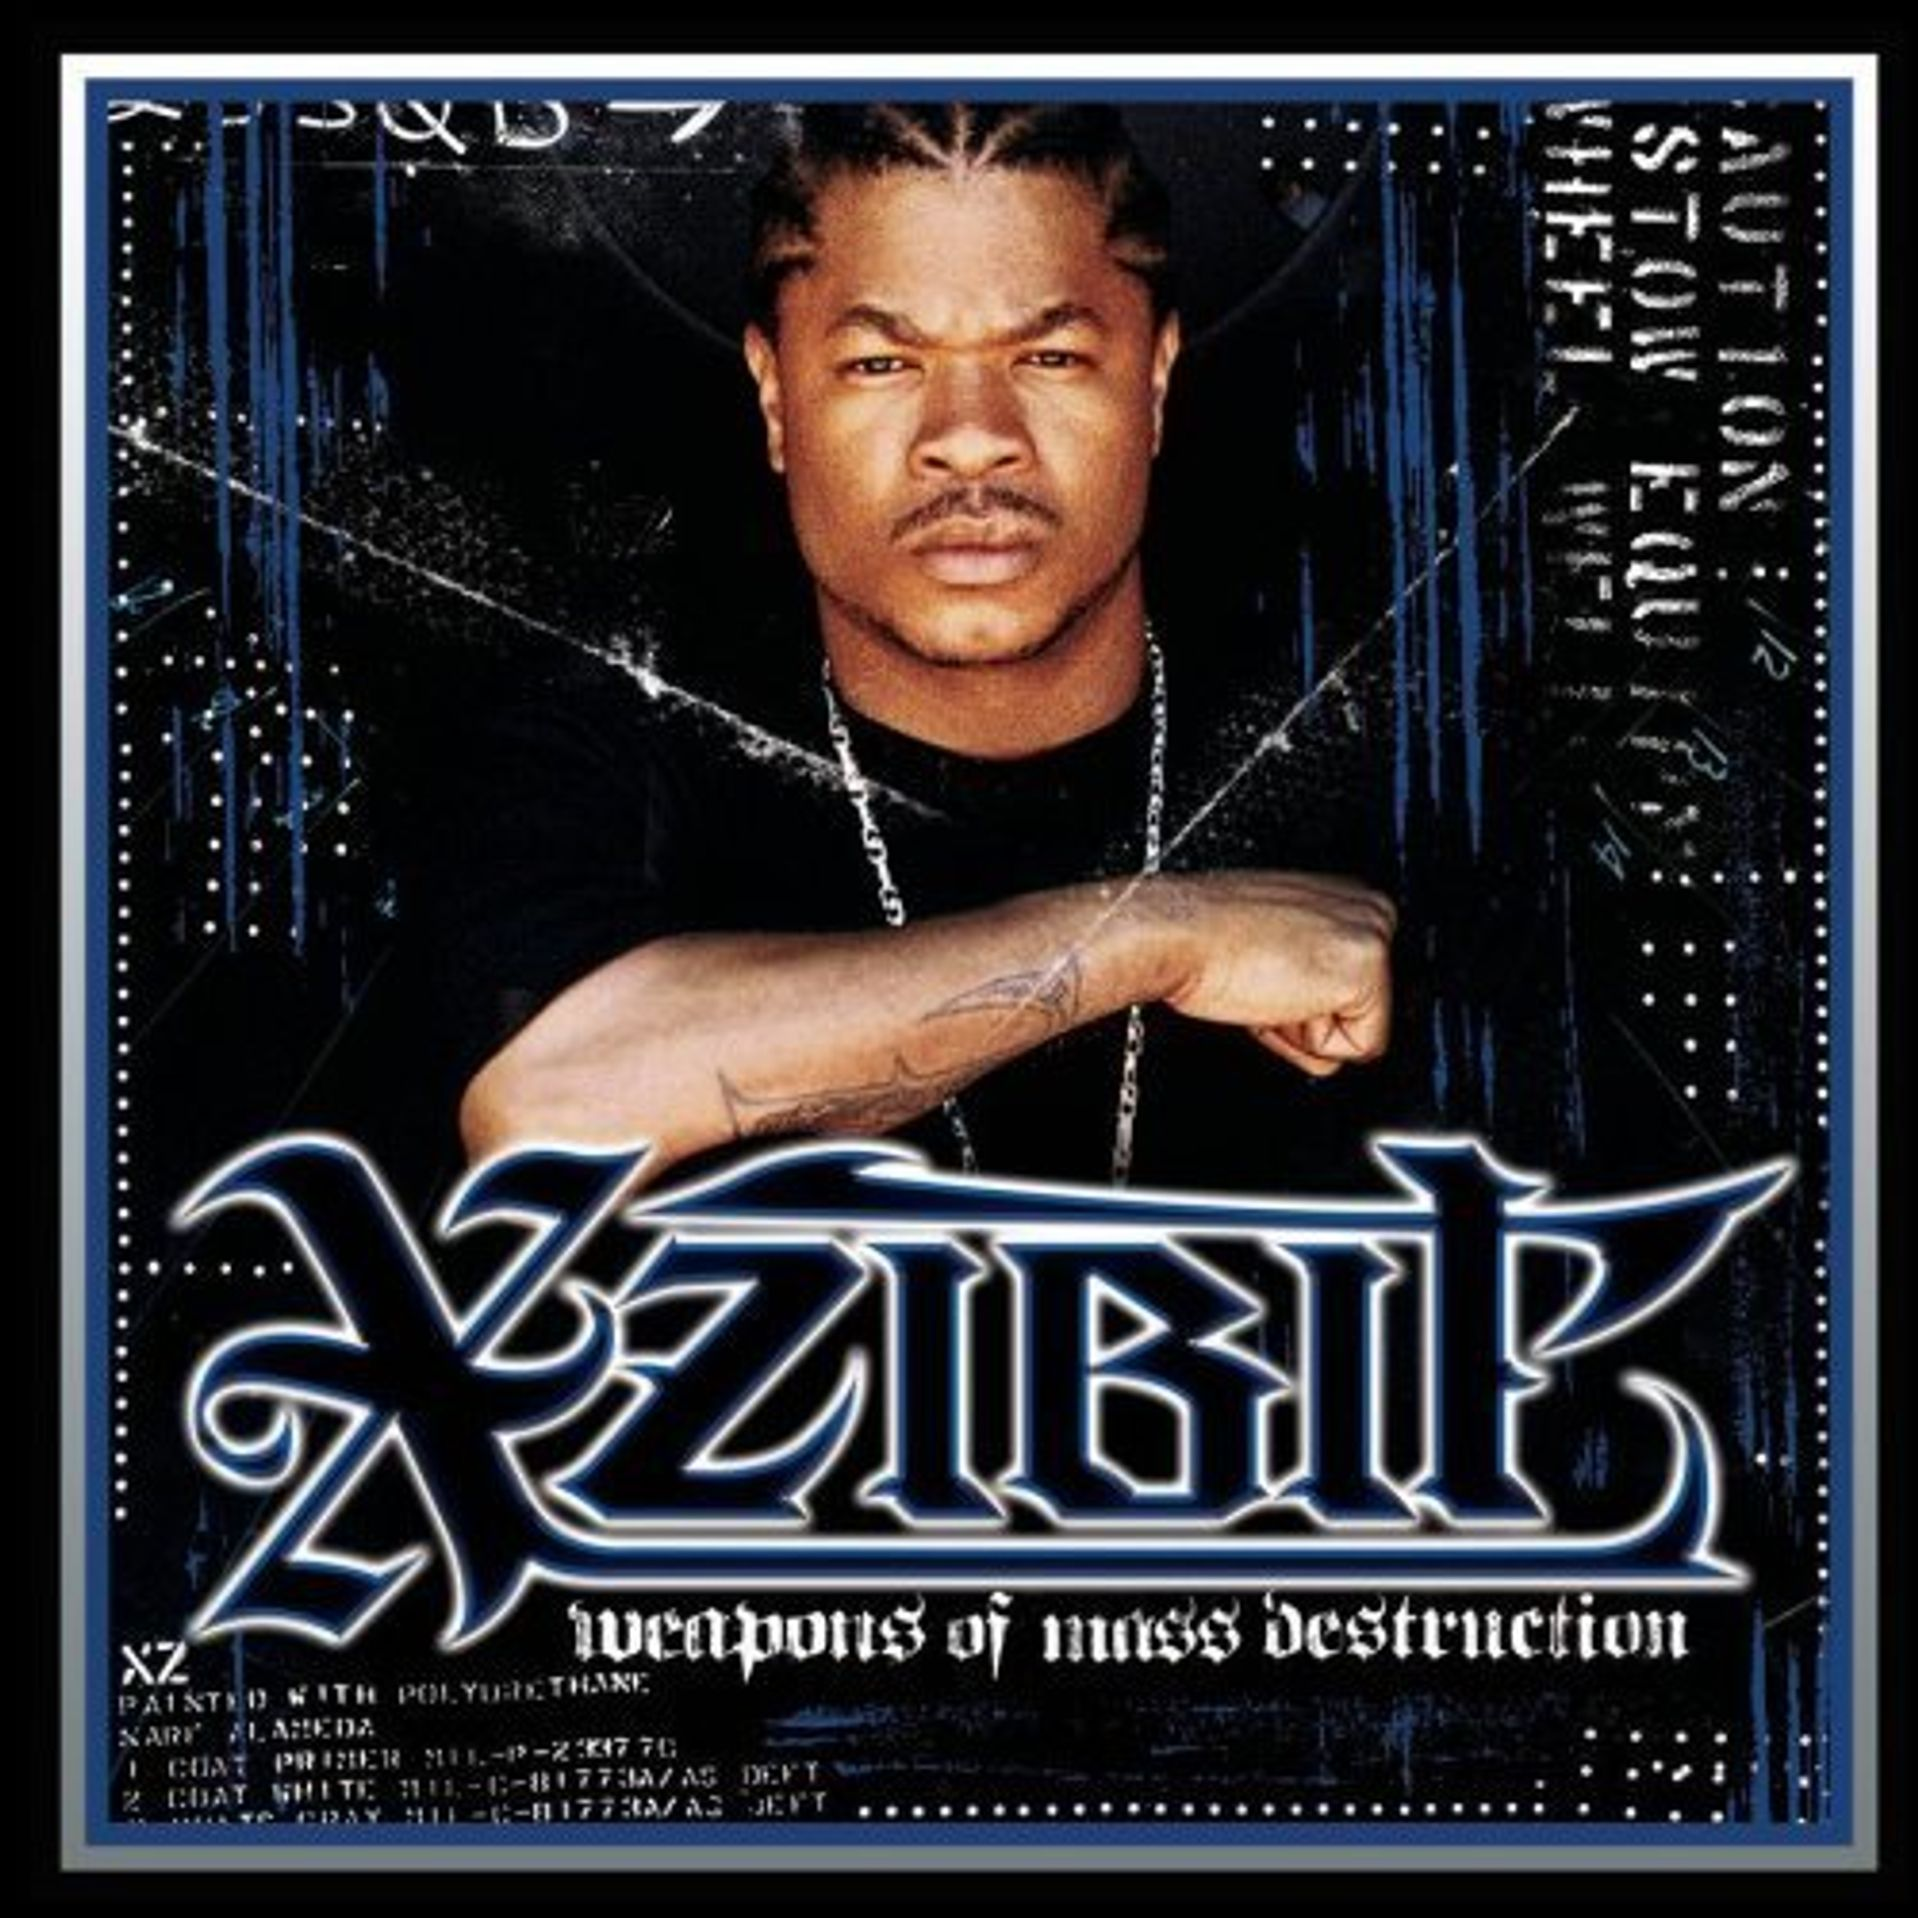 Album Title: Weapons of Mass Destruction by: Xzibit